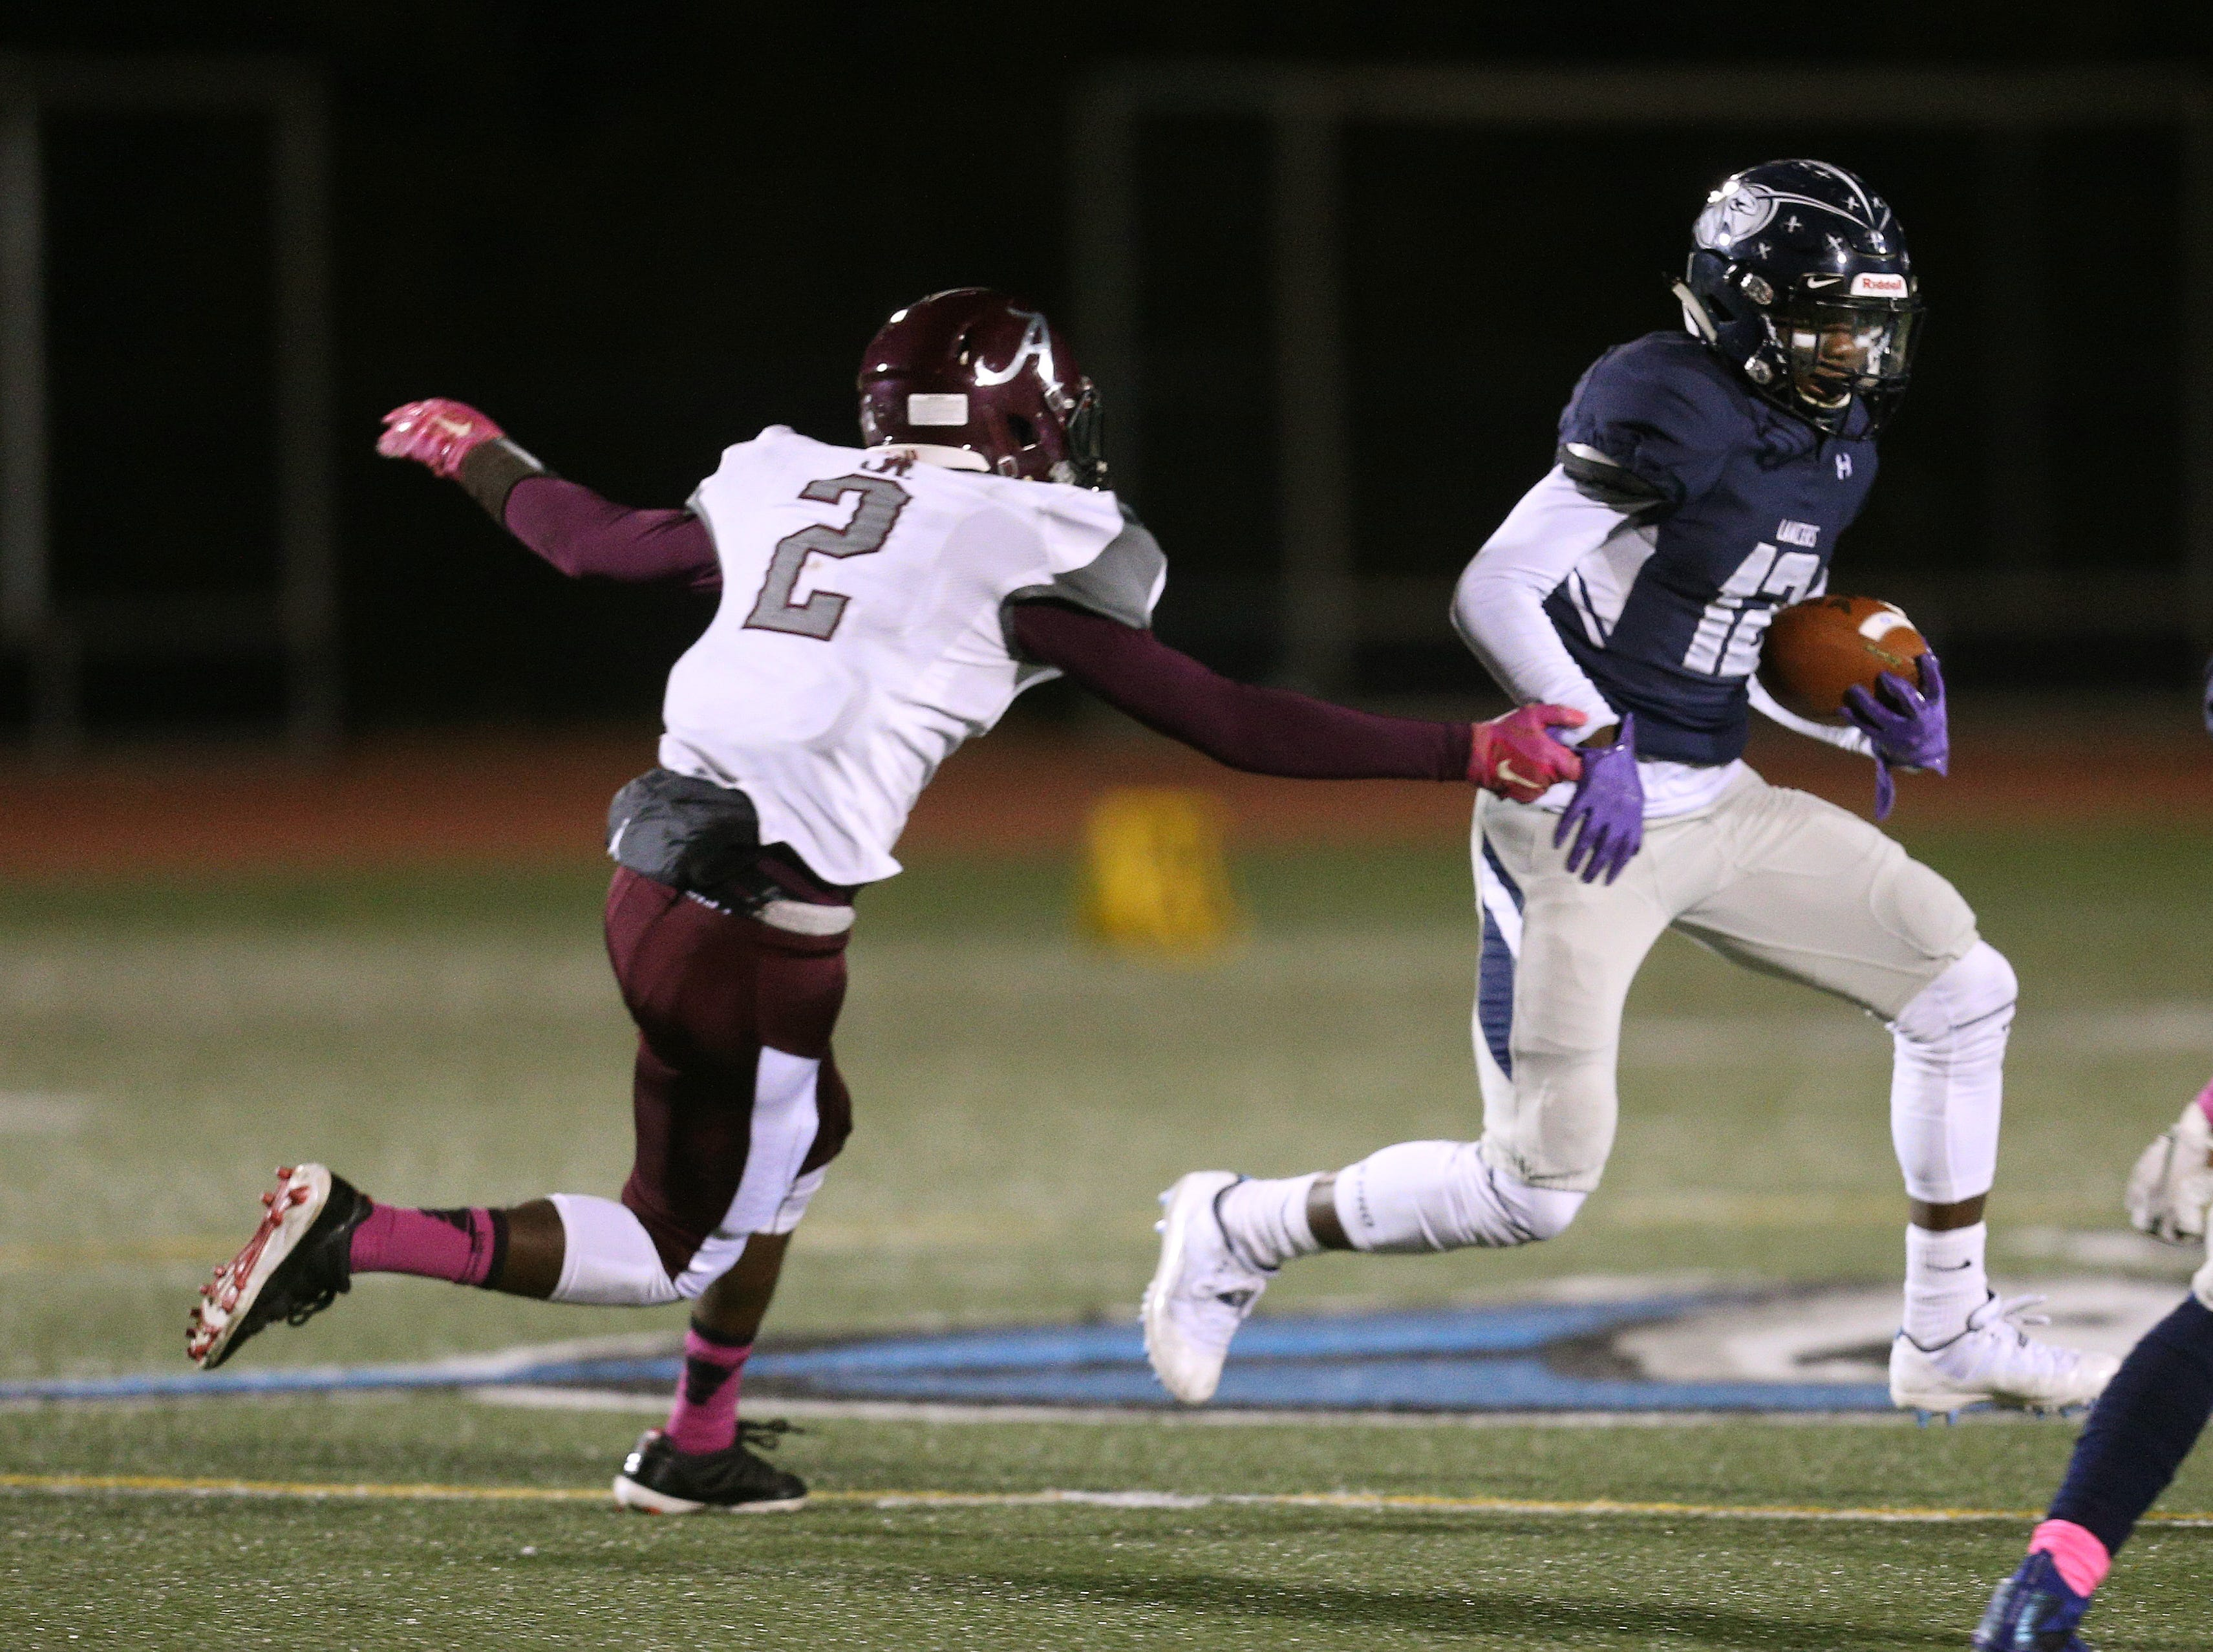 Eastridge's Jalen Rose Hannah tries to get past Arcadia's Aryus Crumity.